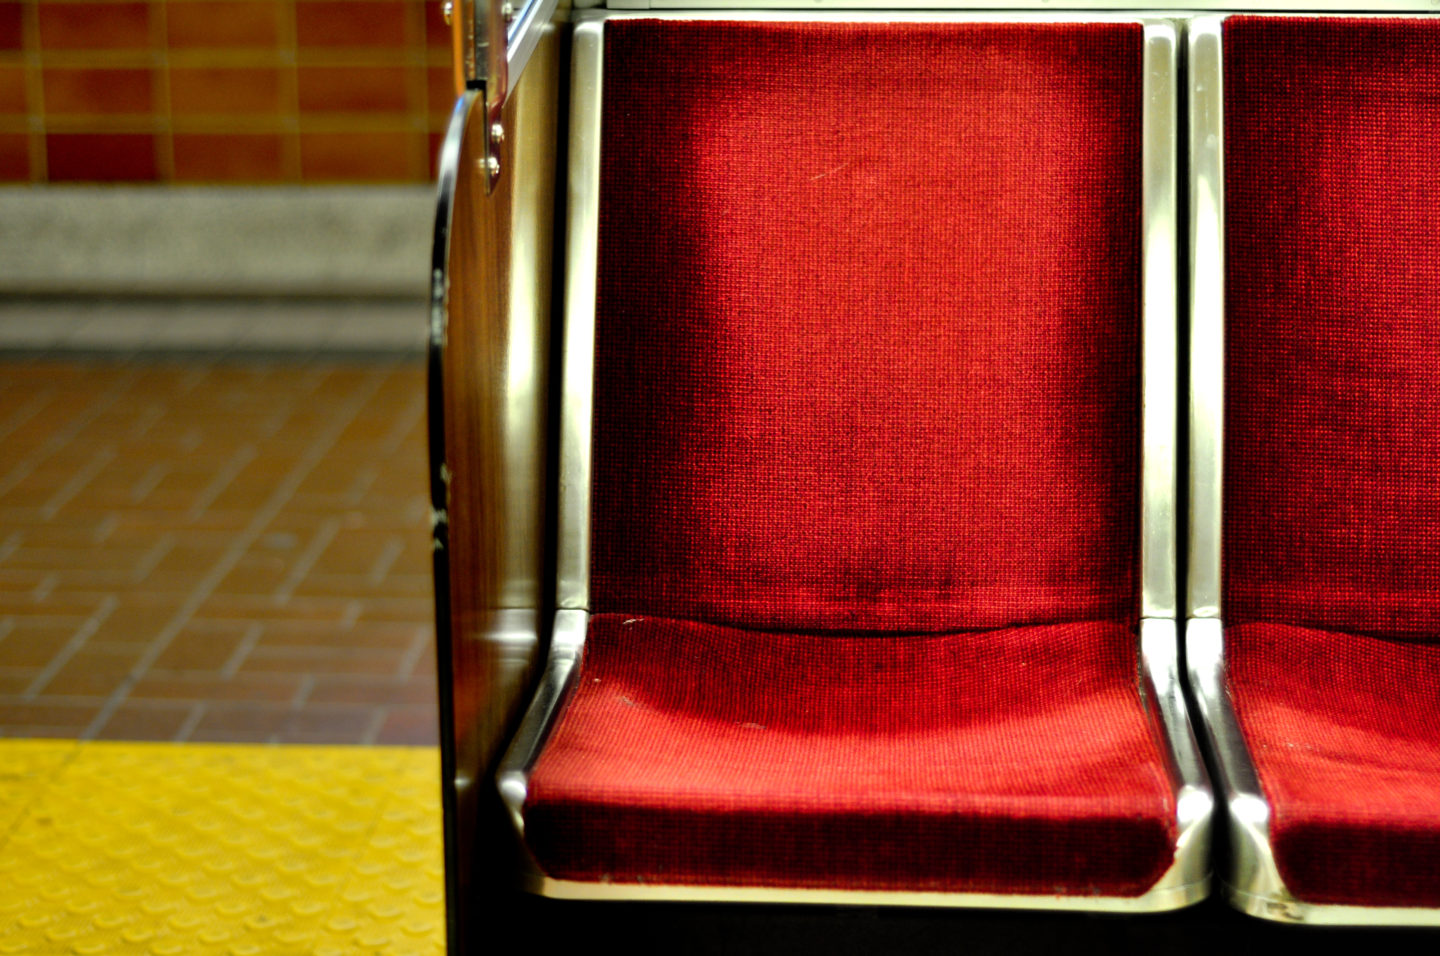 It is time to address the TTC's abuse of people with disabilities